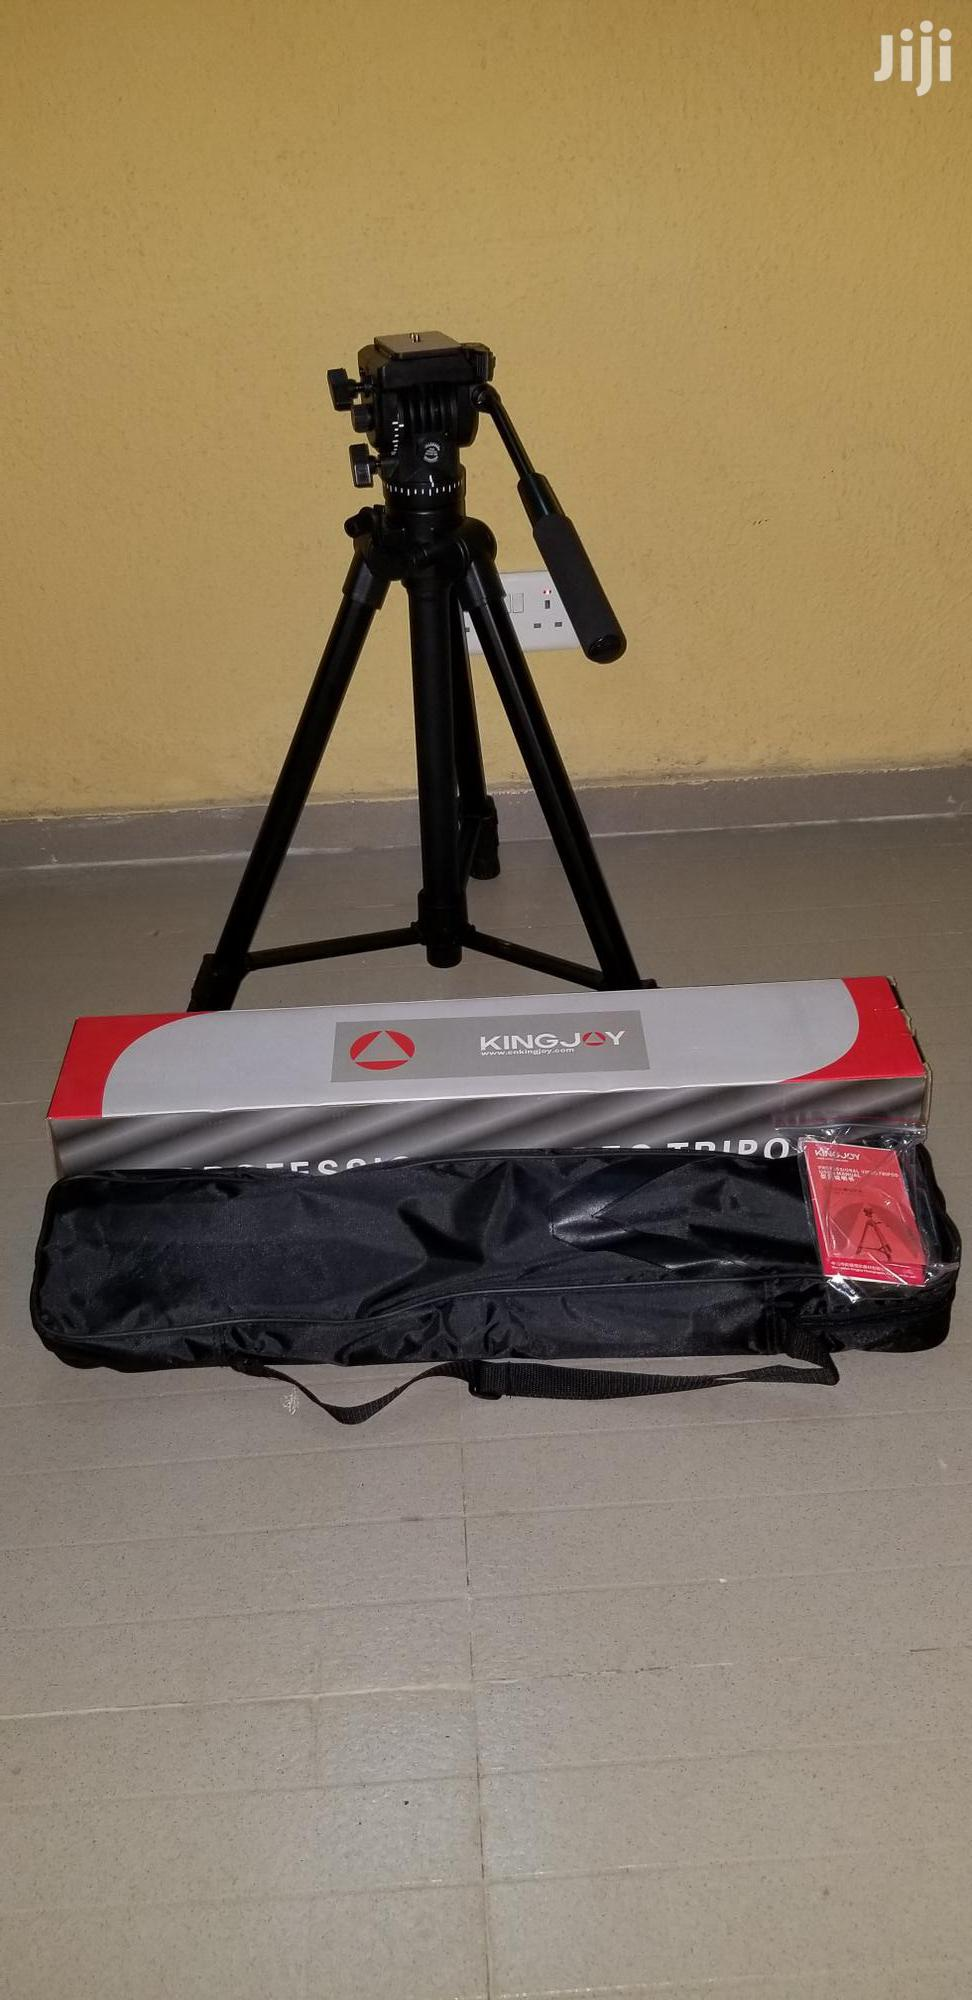 Kingjoy Professional Tripod | Accessories & Supplies for Electronics for sale in Lagos Island, Lagos State, Nigeria